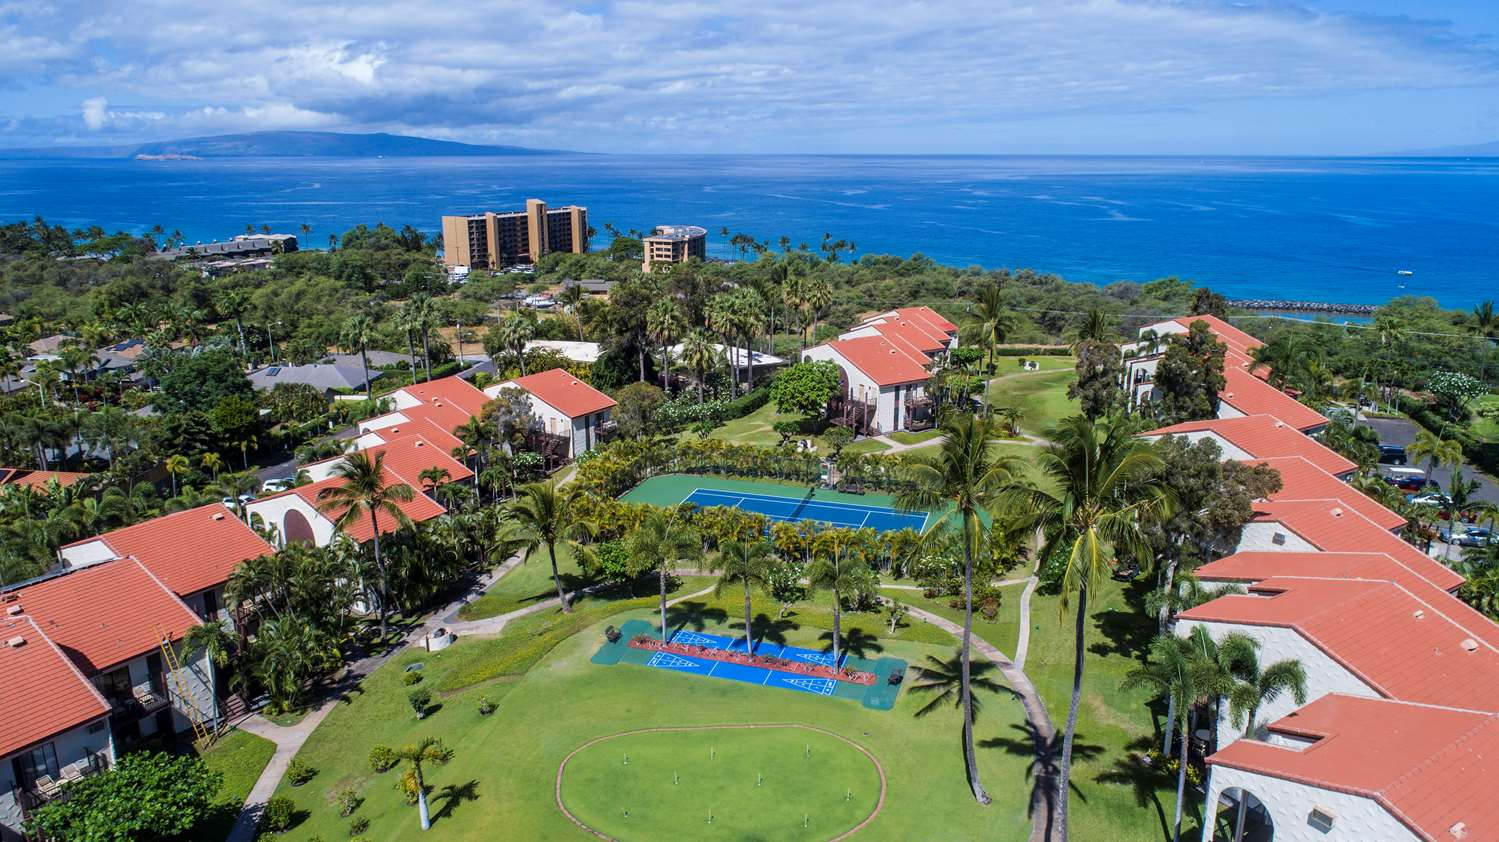 102303 Maui's Makena Beach and Golf Resort has a variety of new food options. but ...